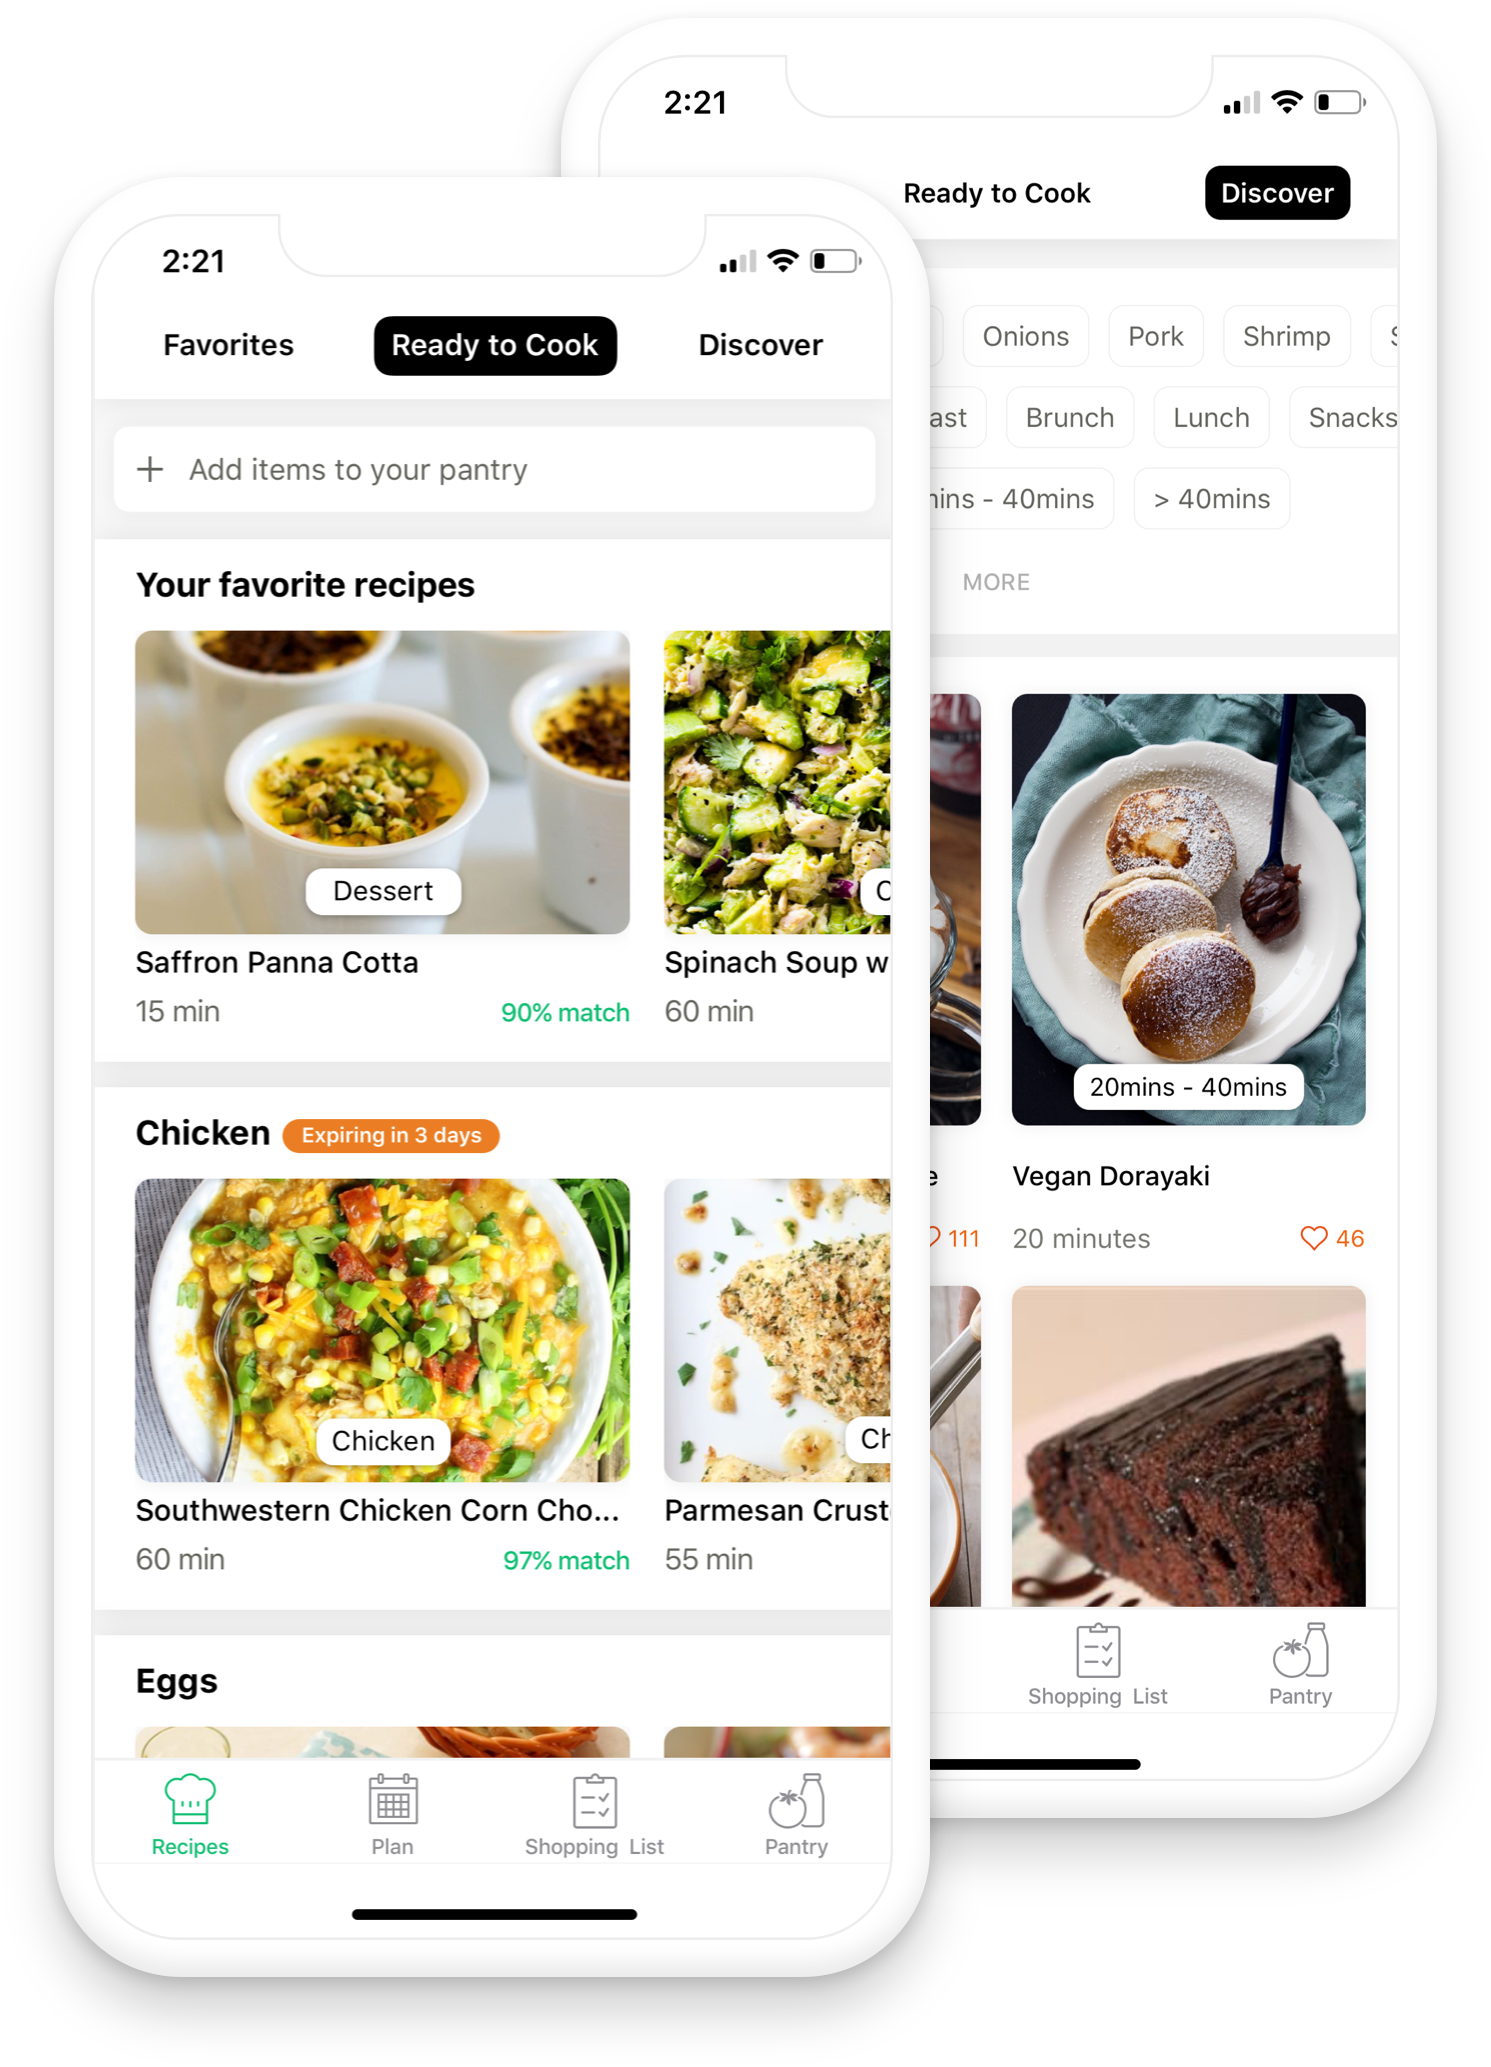 All your Grocery Needs - In one placeAdd missing ingredients to your shopping list with one touch. Chefling syncs your shopping list in real-time with family members to manage your shopping.